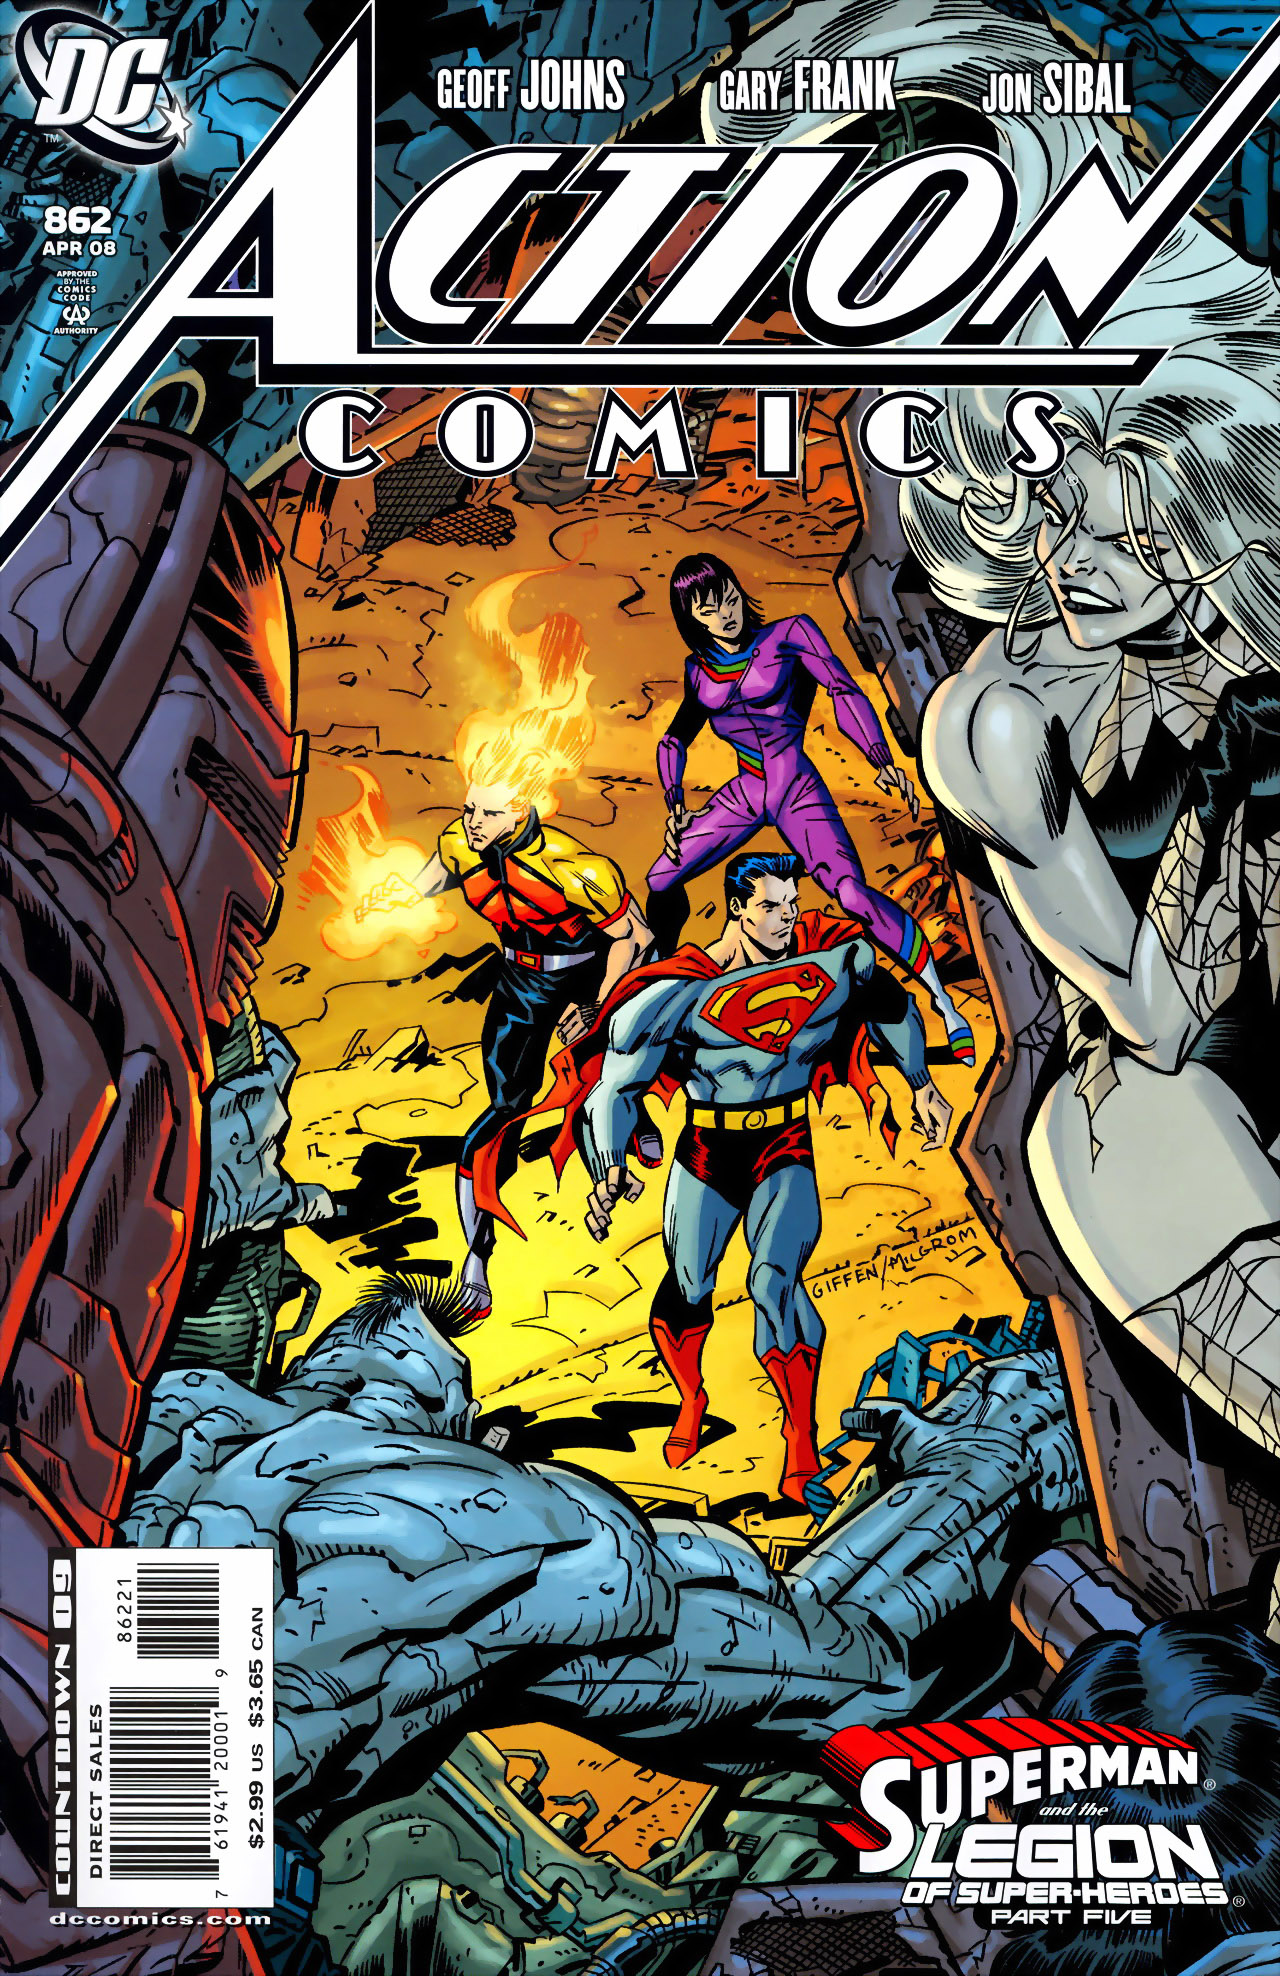 Read online Action Comics (1938) comic -  Issue #862 - 1